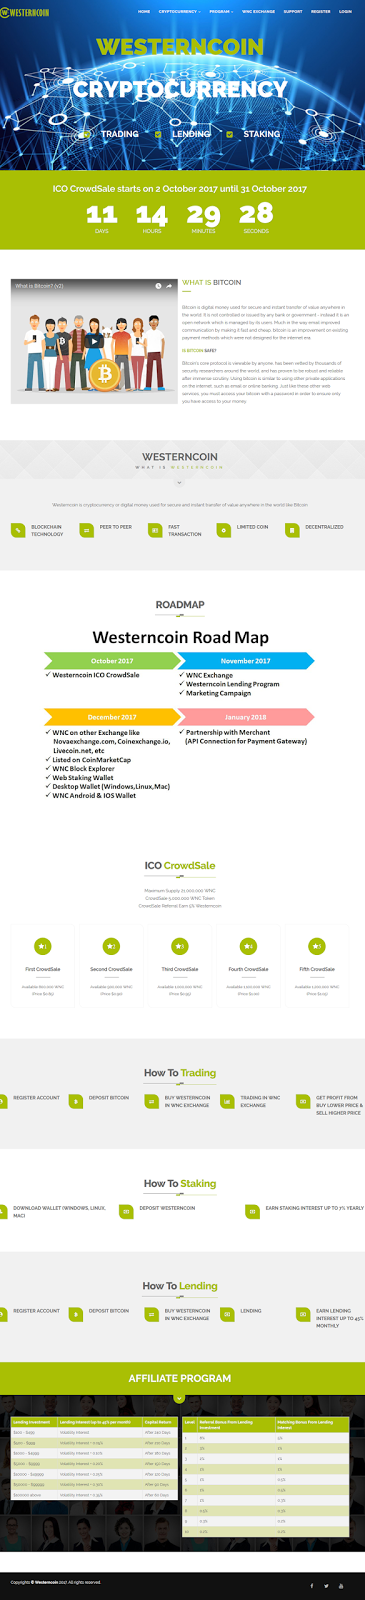 westerncoin.co Designed By Buyhyipweb